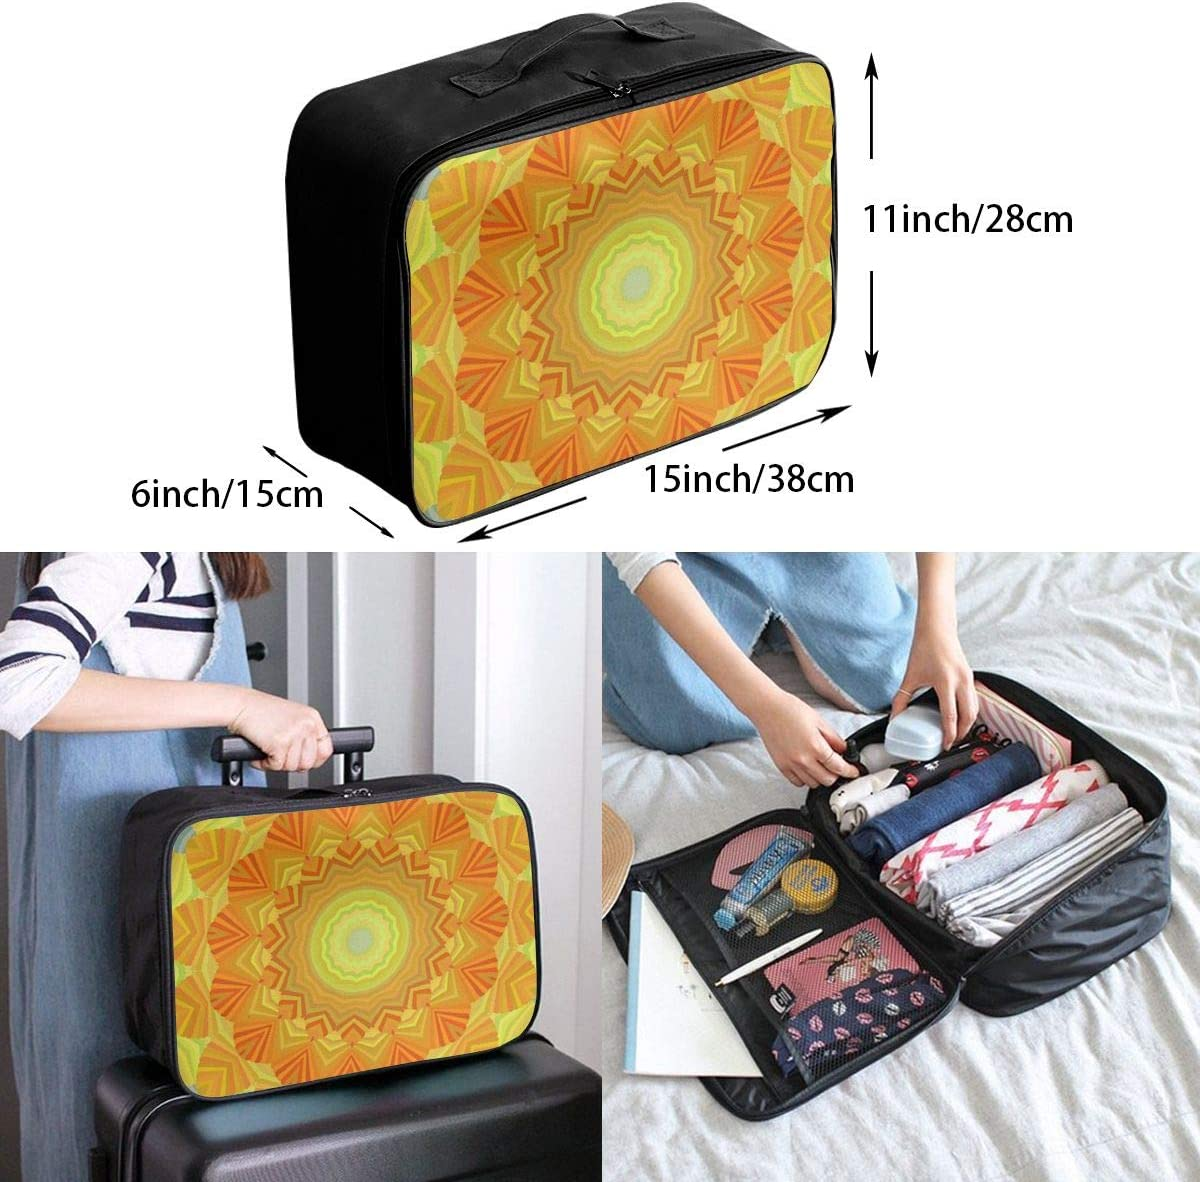 Yunshm Sunshine Sunny Sun Abstract Yellow Bright Customized Trolley Handbag Waterproof Unisex Large Capacity For Business Travel Storage